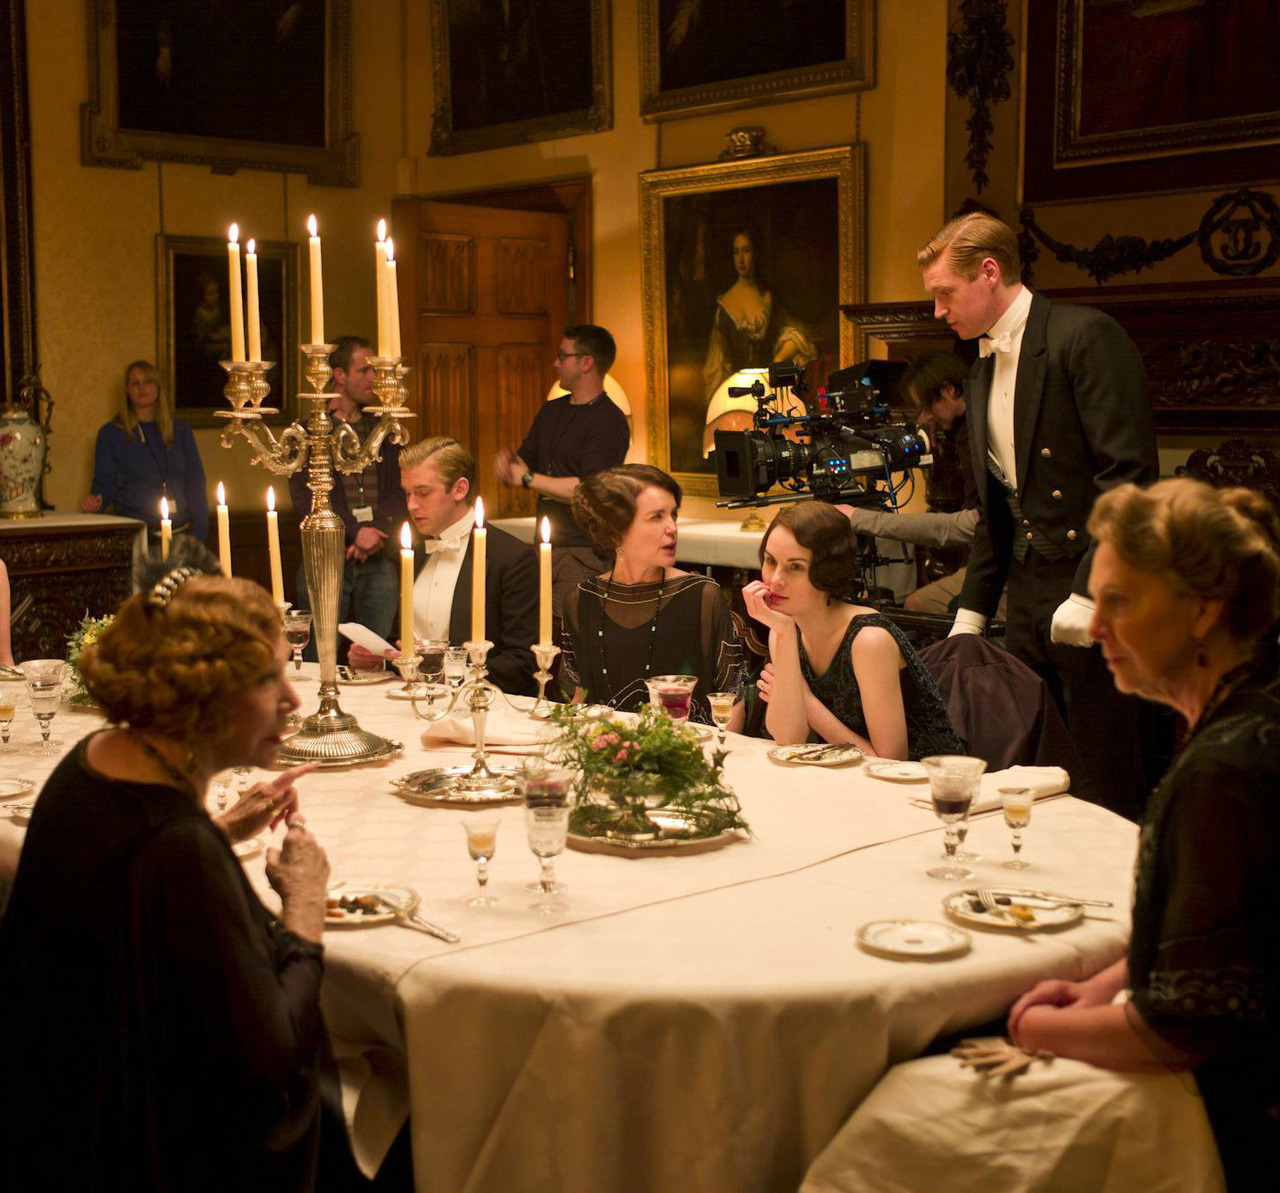 Downton Abbey Season Three behind-the-scenes Michelle Dockery looking adoringly at Shirley MacLaine, so sweet.